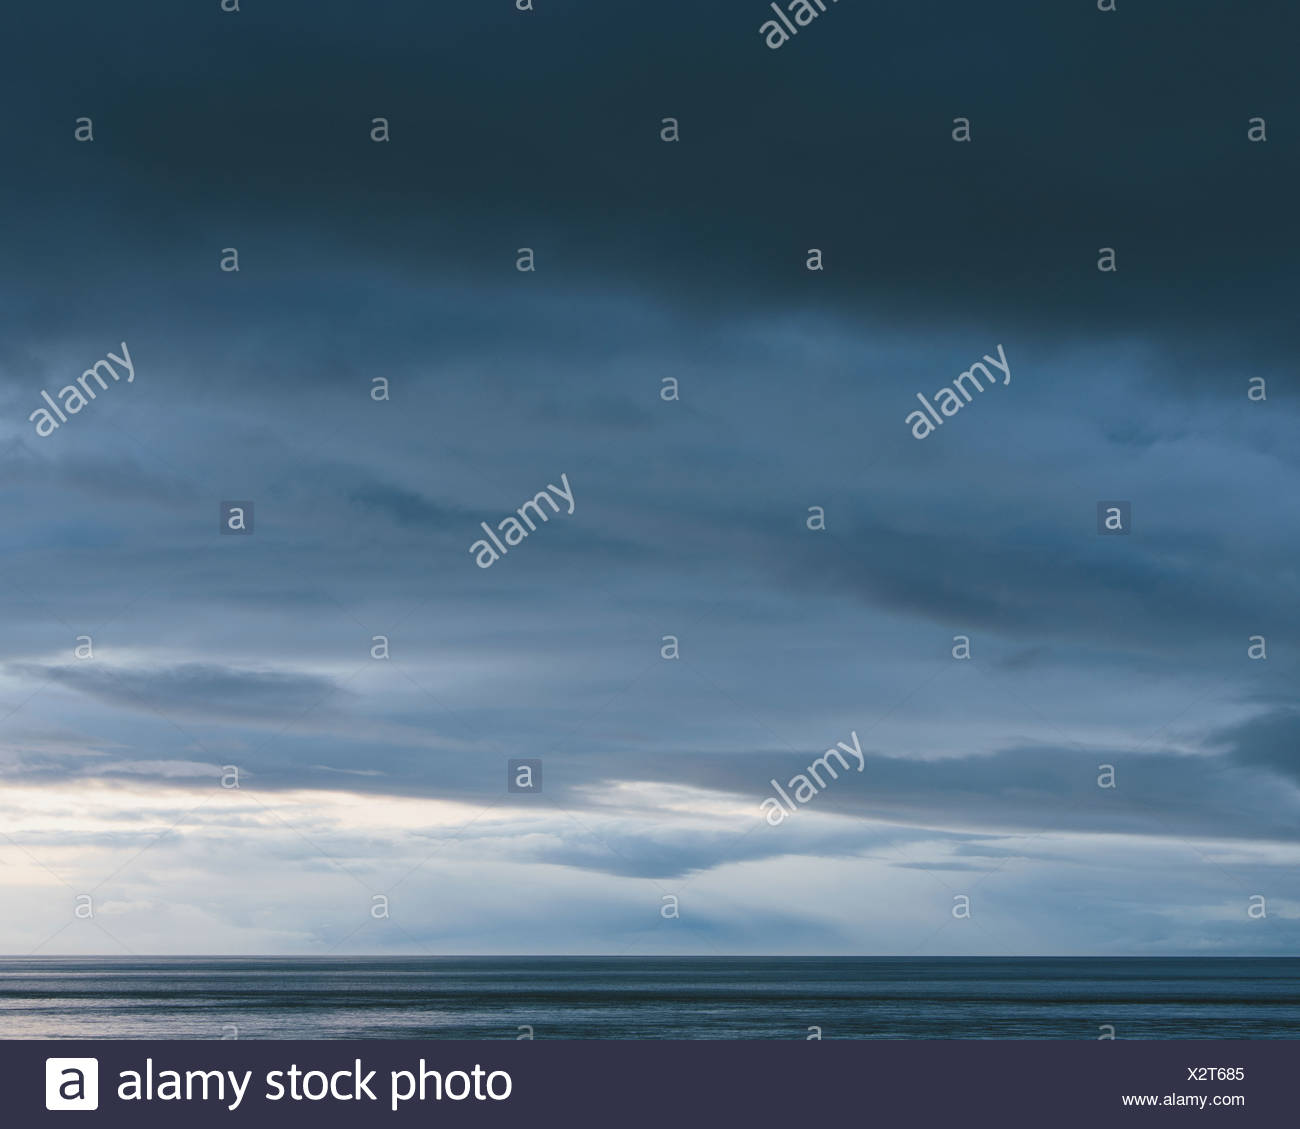 The sea and sky over Puget Sound in Washington USA The horizon with light and cloud layers above Gathering storm clouds - Stock Image